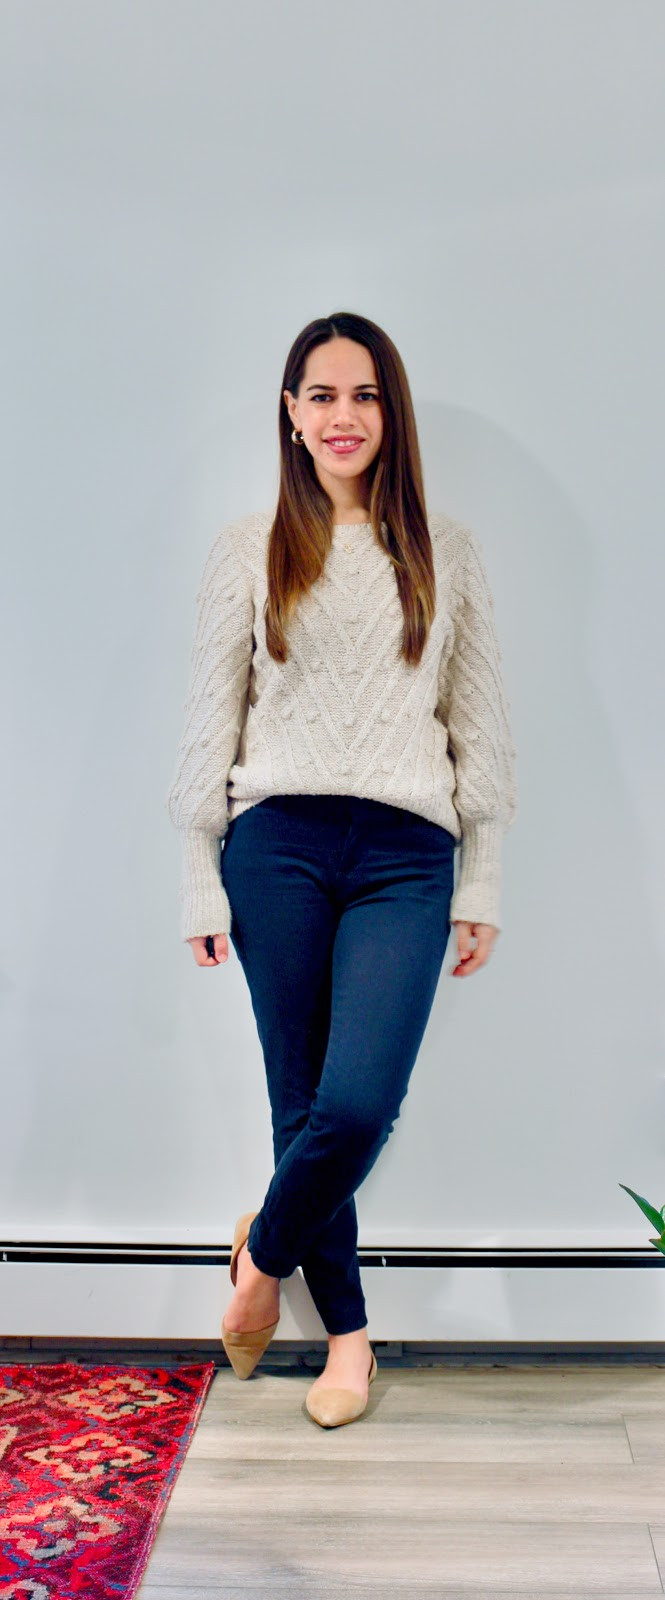 Jules in Flats - Gap Bobble Stitch Pullover Sweater (Business Casual Winter Workwear on a Budget)